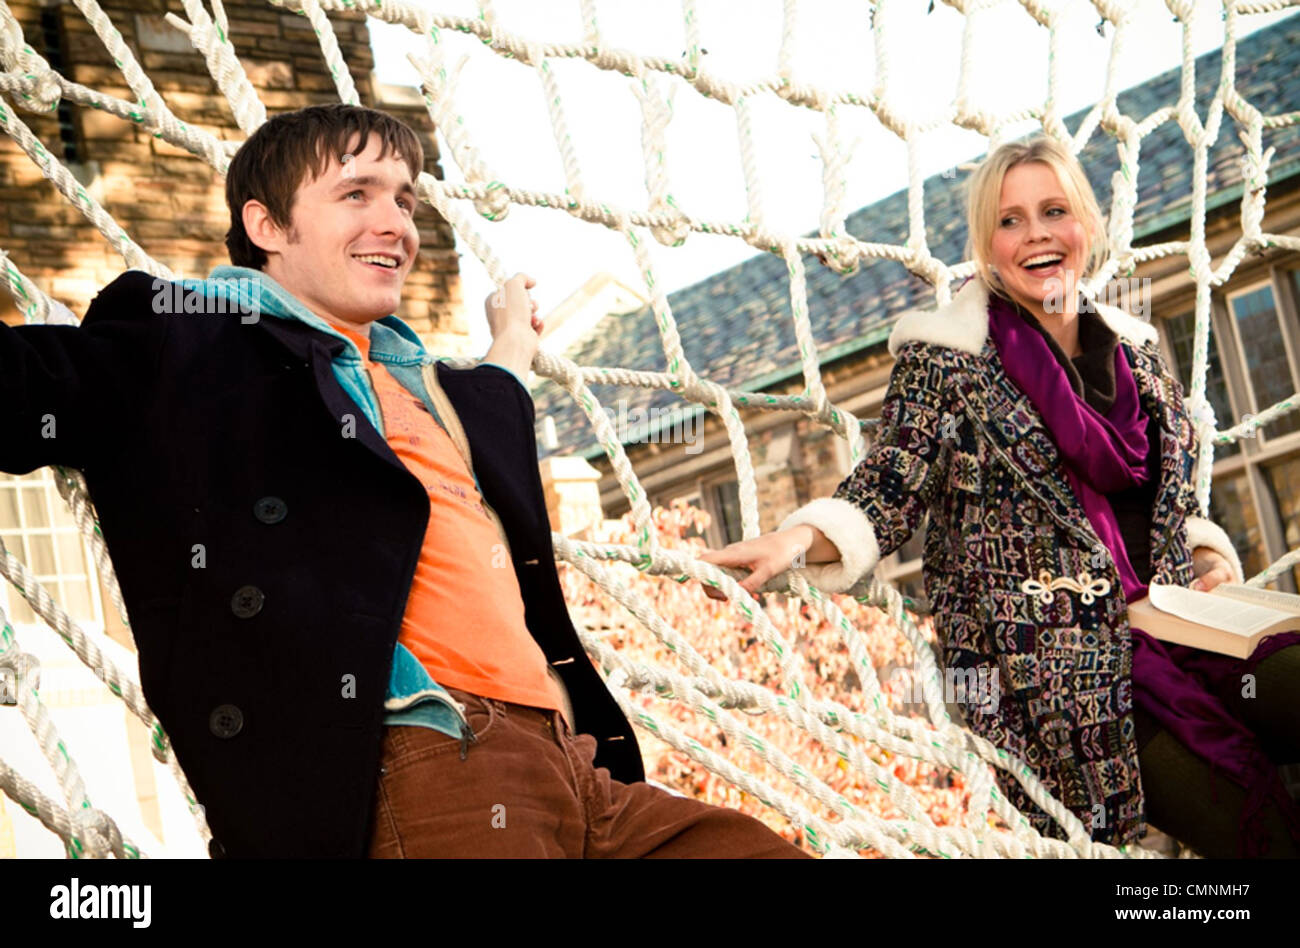 BLUE LIKE JAZZ 2012 Roadside Attractions film with Marshall Allman and Claire Holt - Stock Image